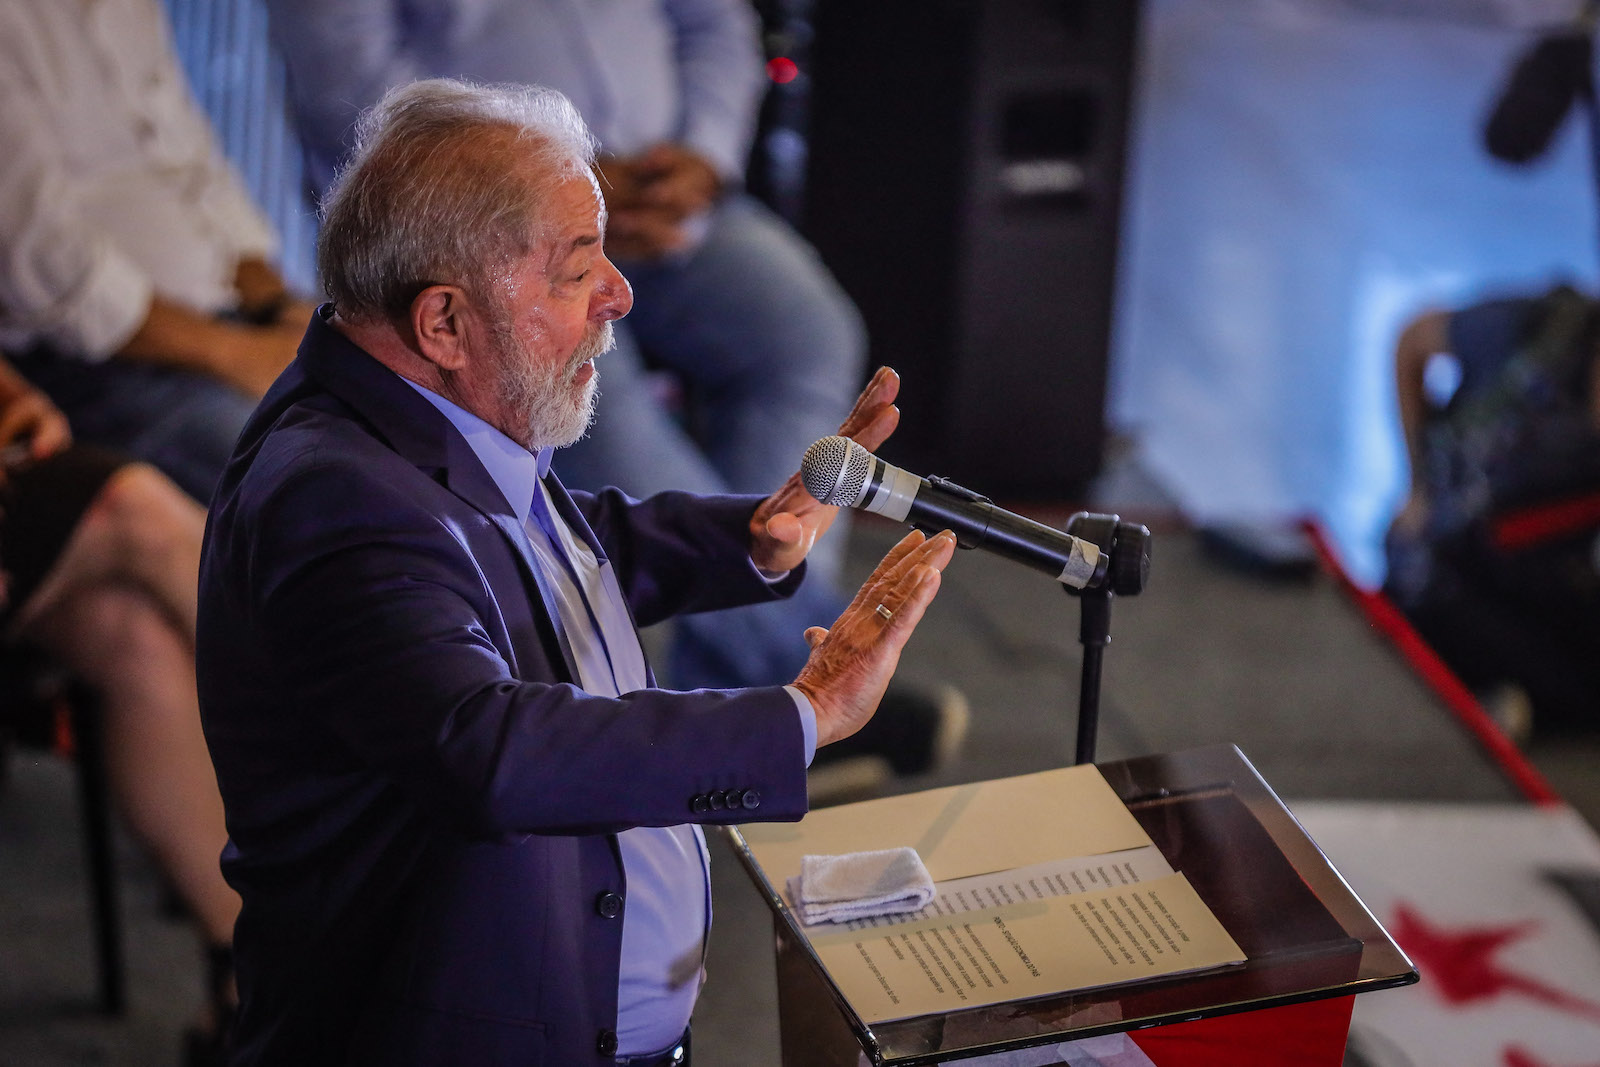 Lula at his press conference at the ABC Metalworkers Union. Photo AFP / Vanessa Carvalho / Brazil Photo Press